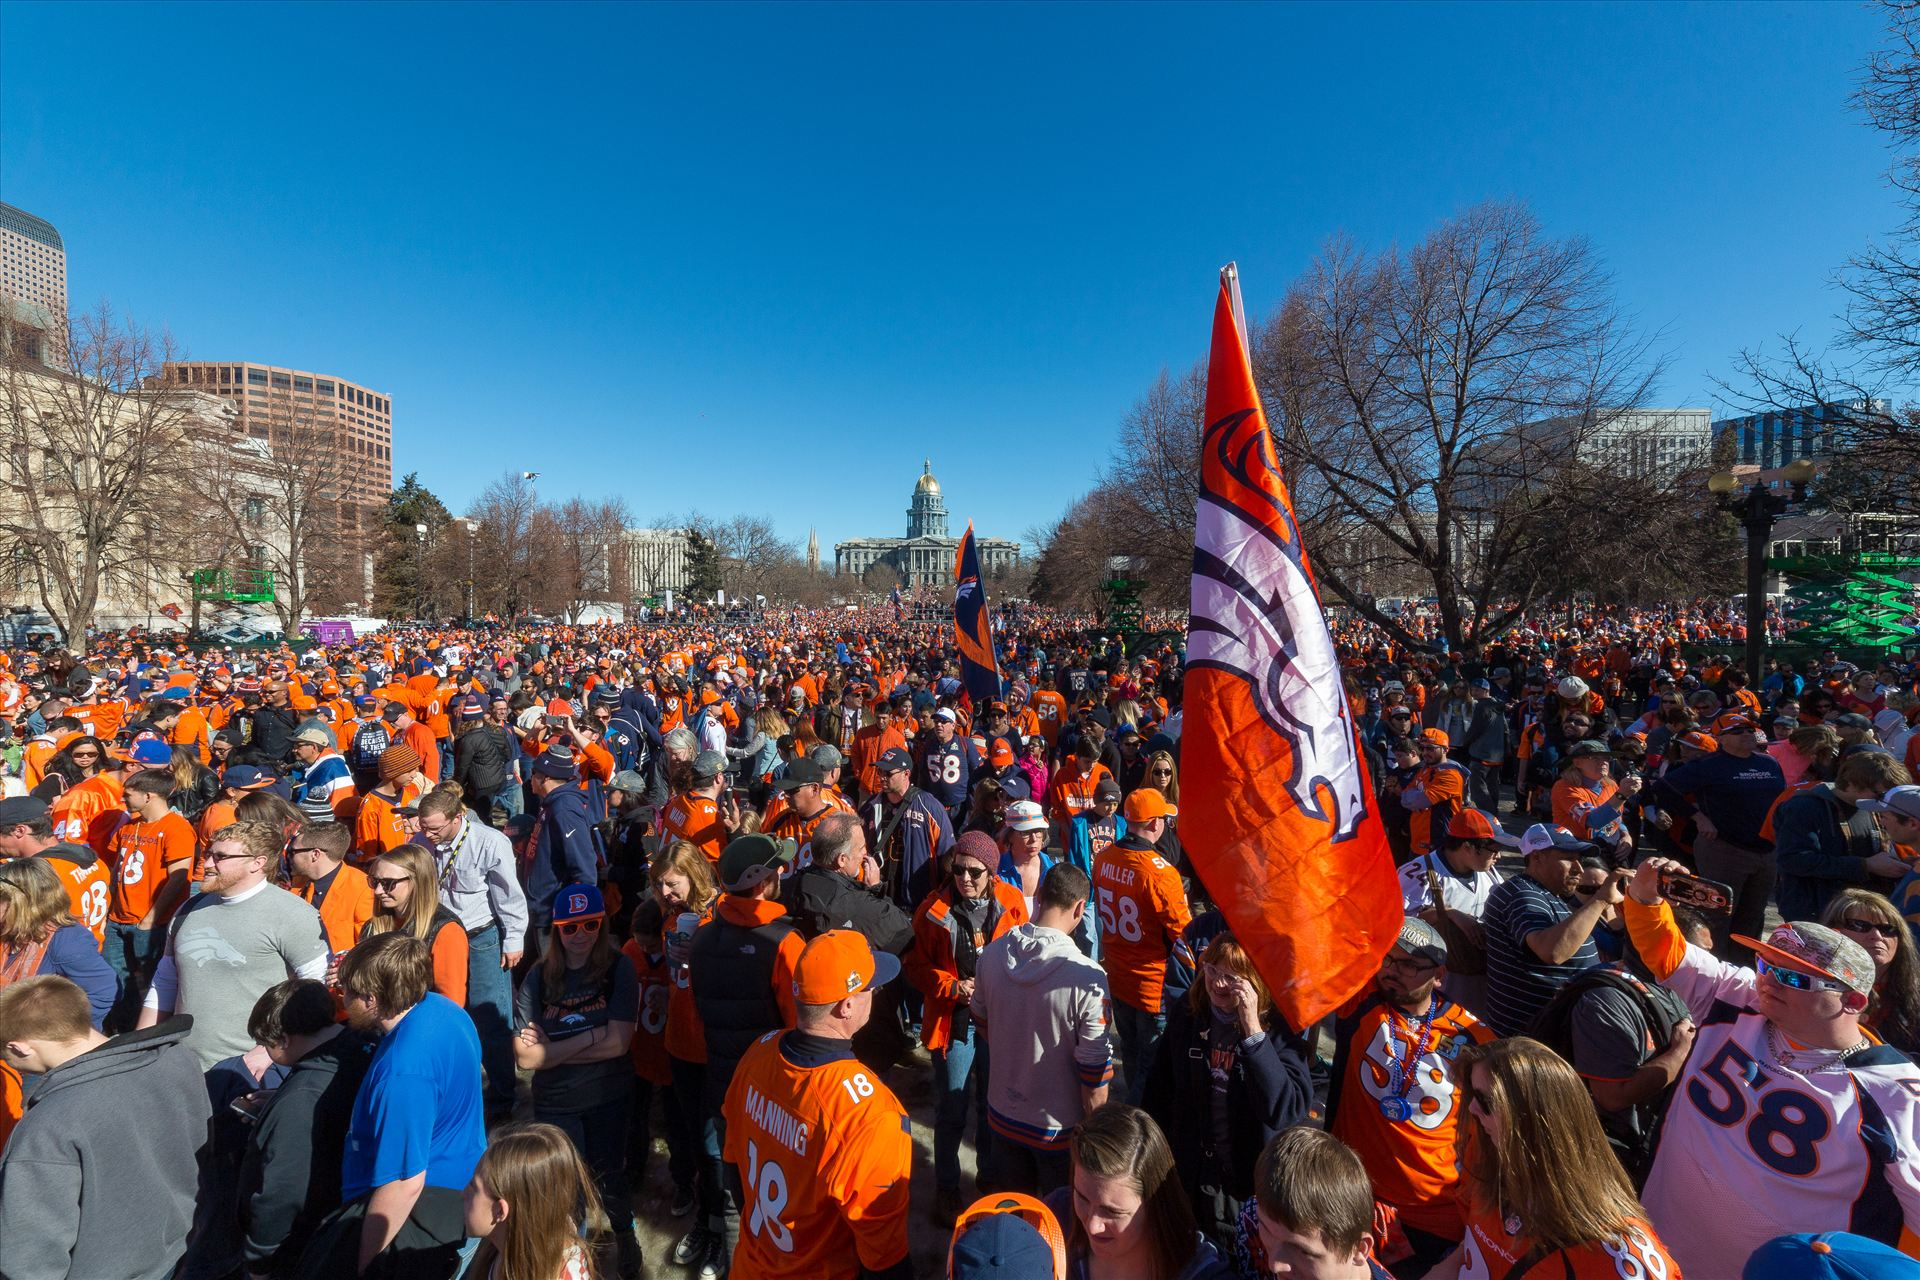 Broncos fans at Civic Park - Fans of the Denver Broncos completely fill Civic Park in Denver Colorado. The state capitol building is visible in the center of the frame. by D Scott Smith